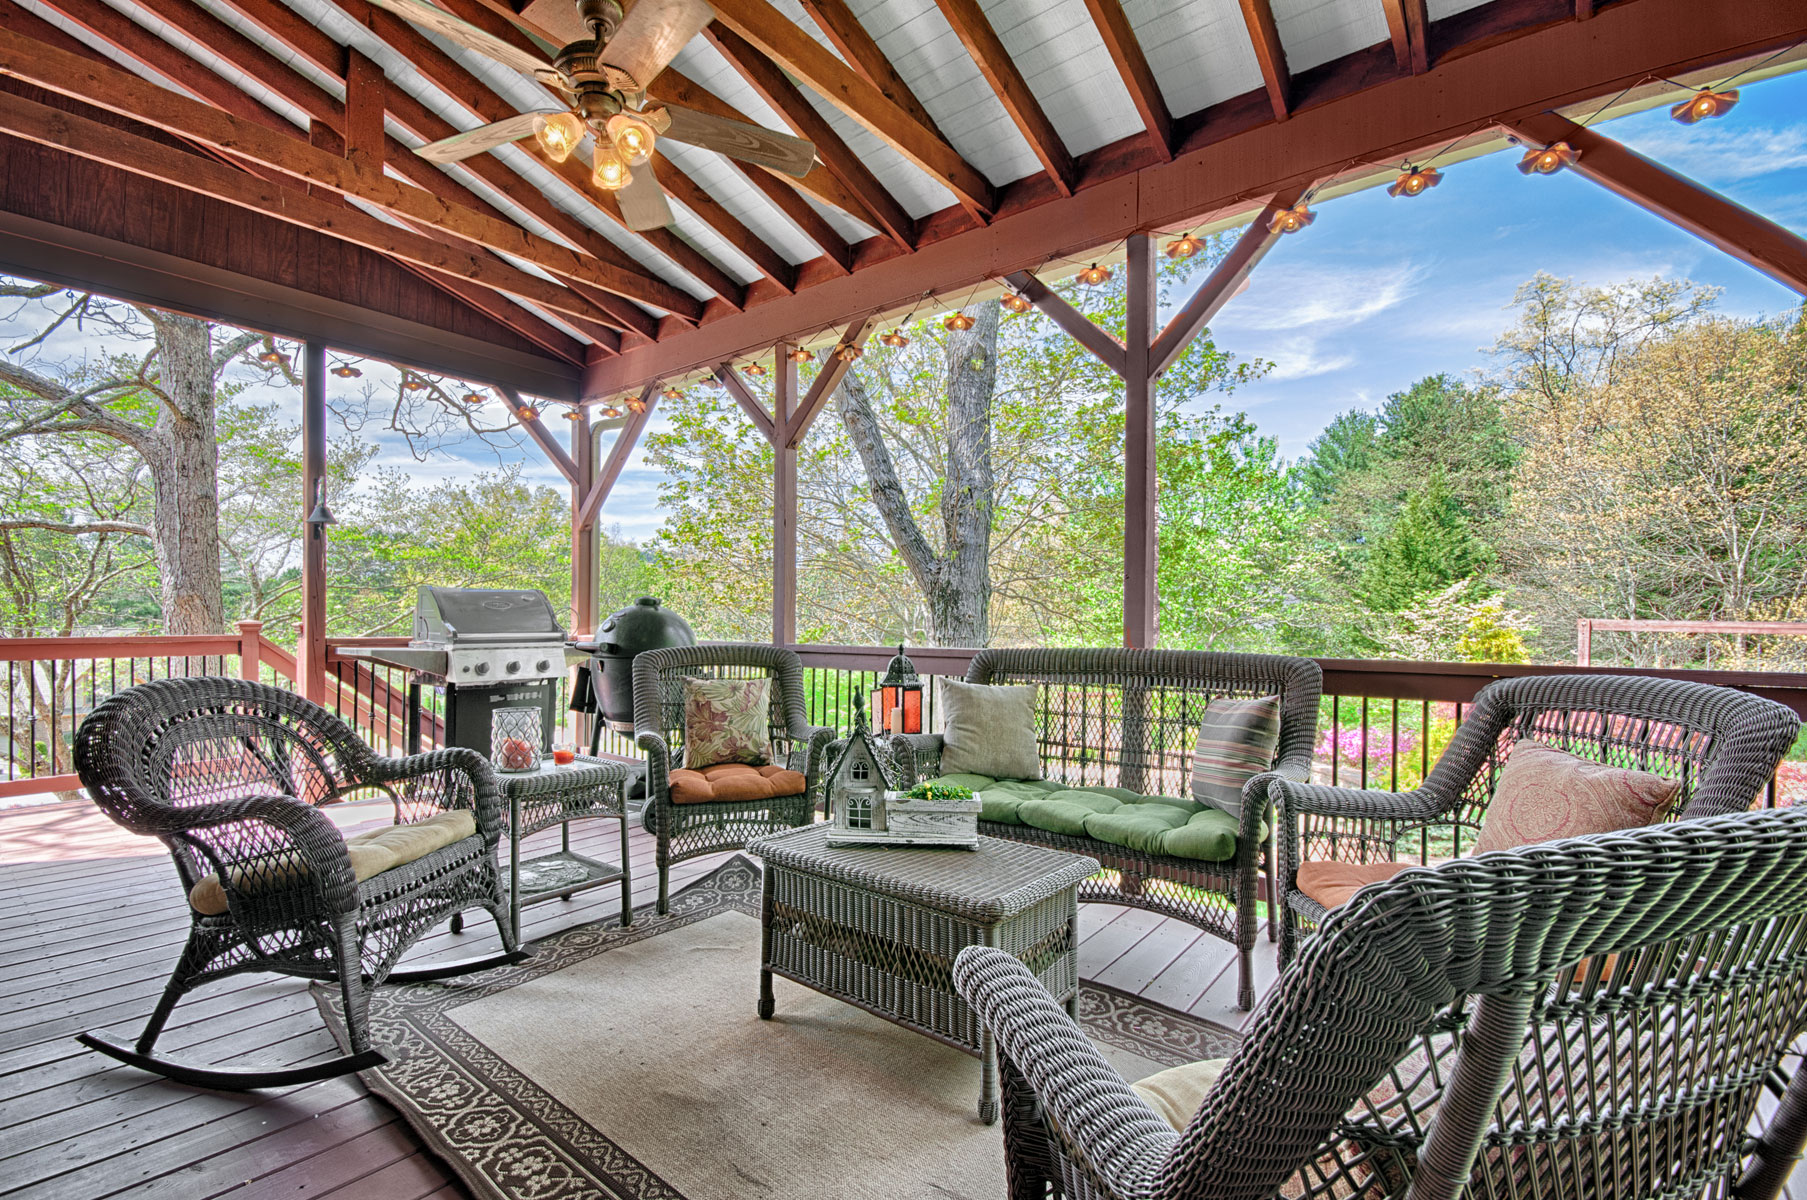 Covered deck overlooking backyard